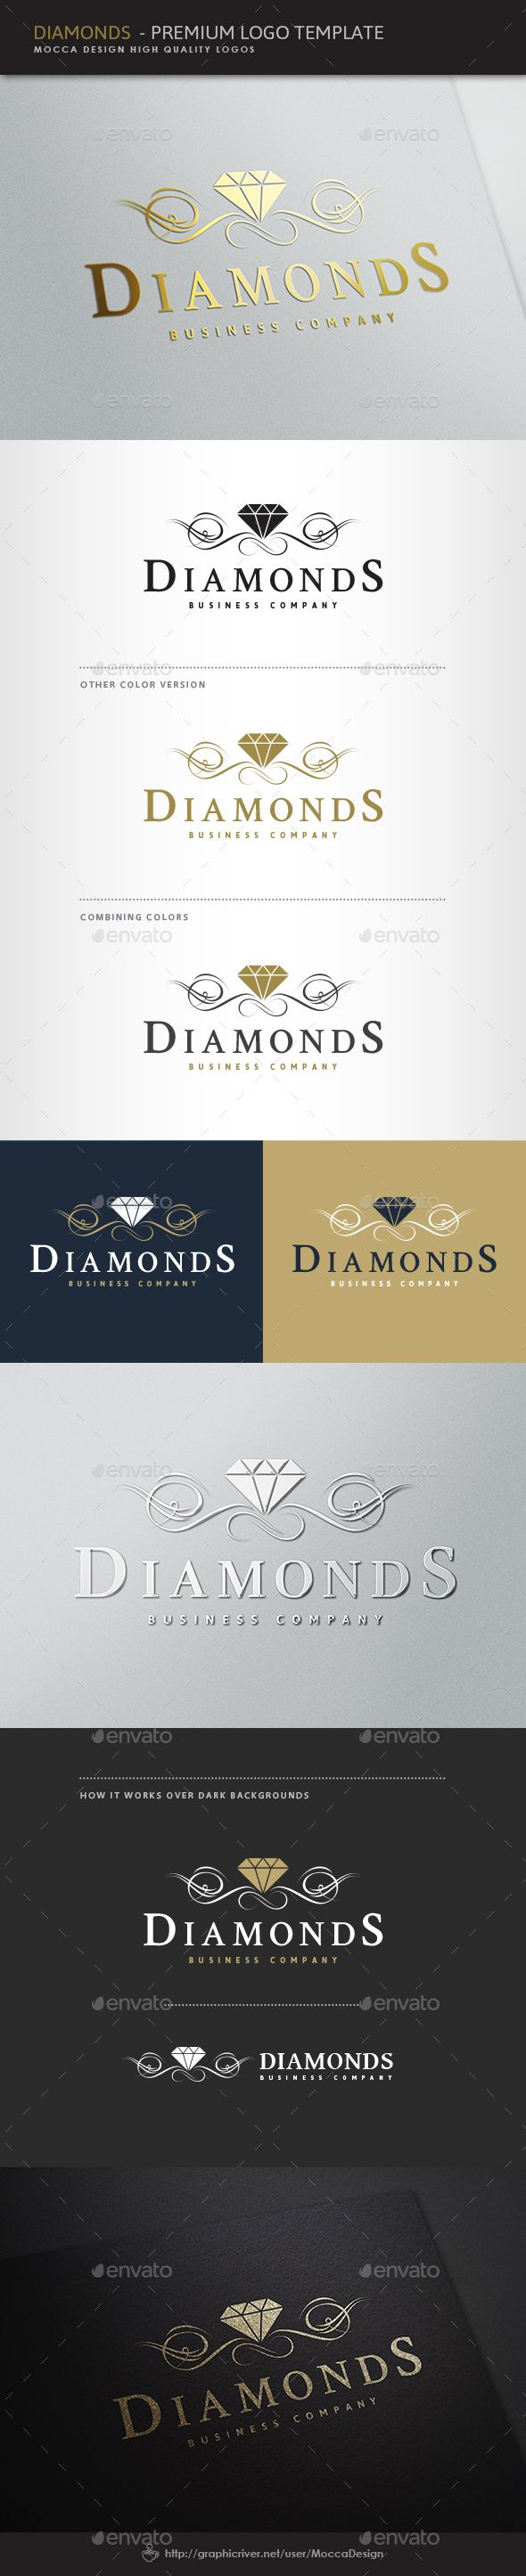 Diamonds Logo — Vector EPS #shiny crystals #decorative business • Available here → https://graphicriver.net/item/diamonds-logo/4143456?ref=pxcr